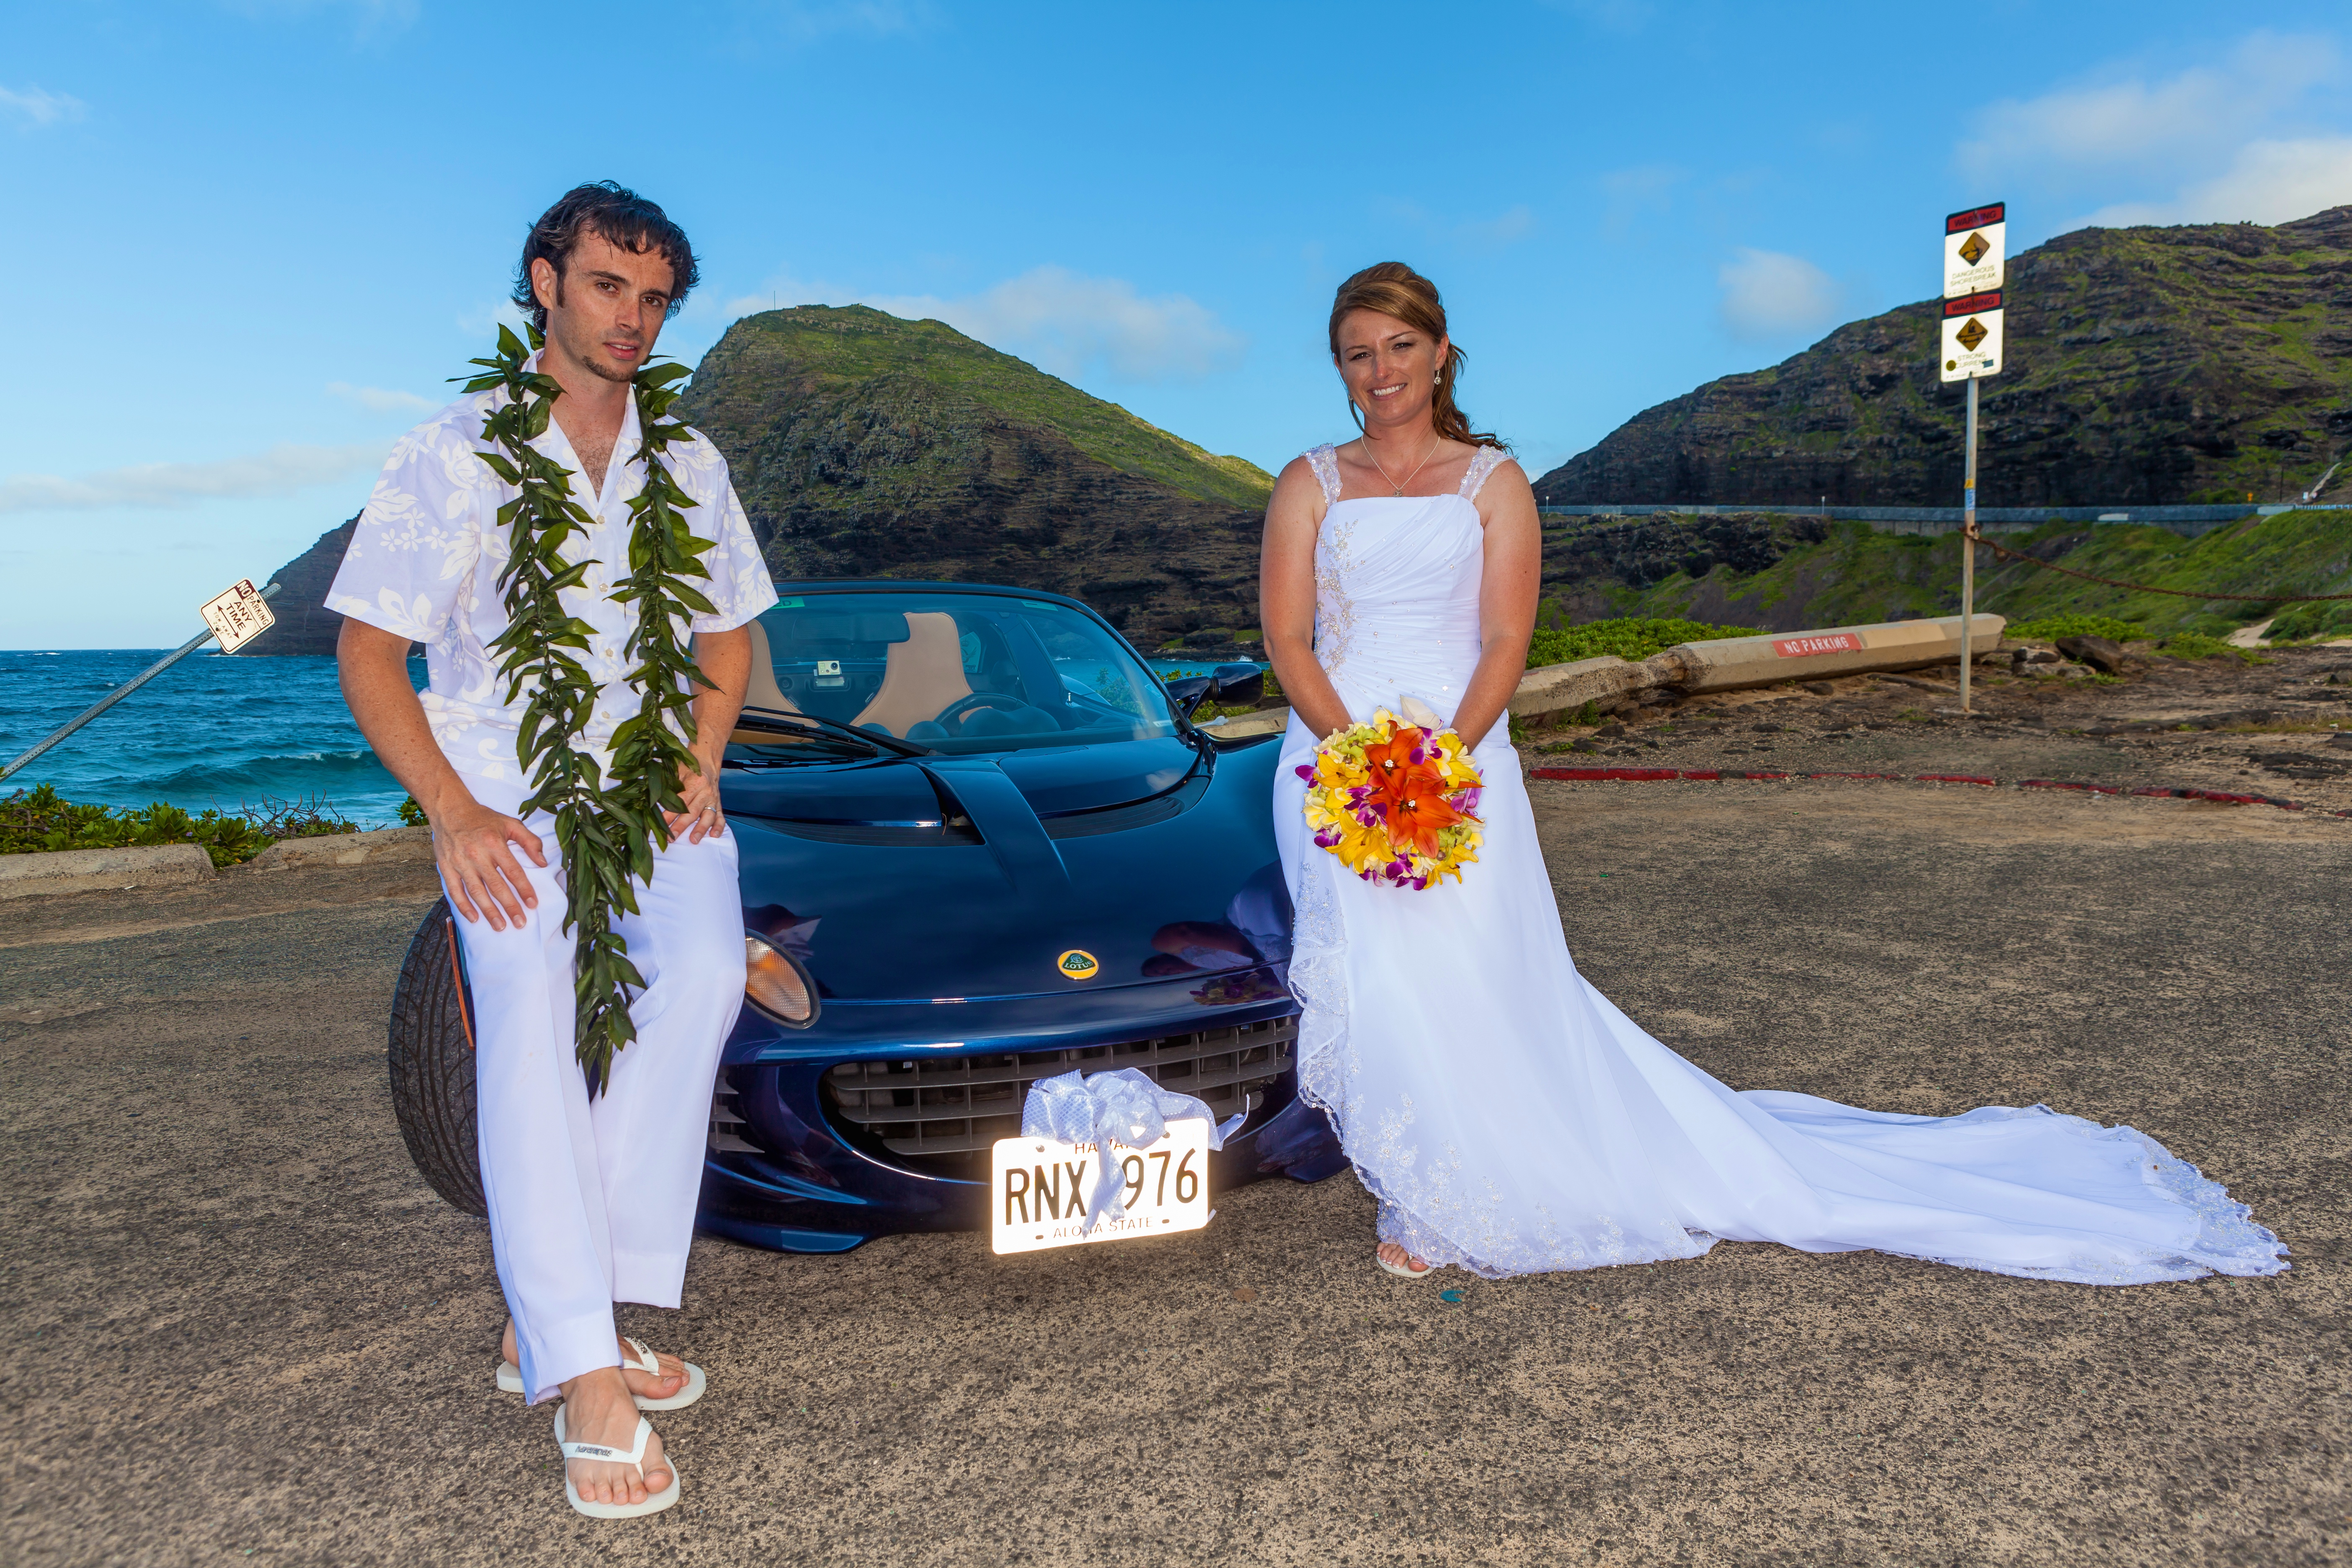 alohaislandweddings- Lotus car -19